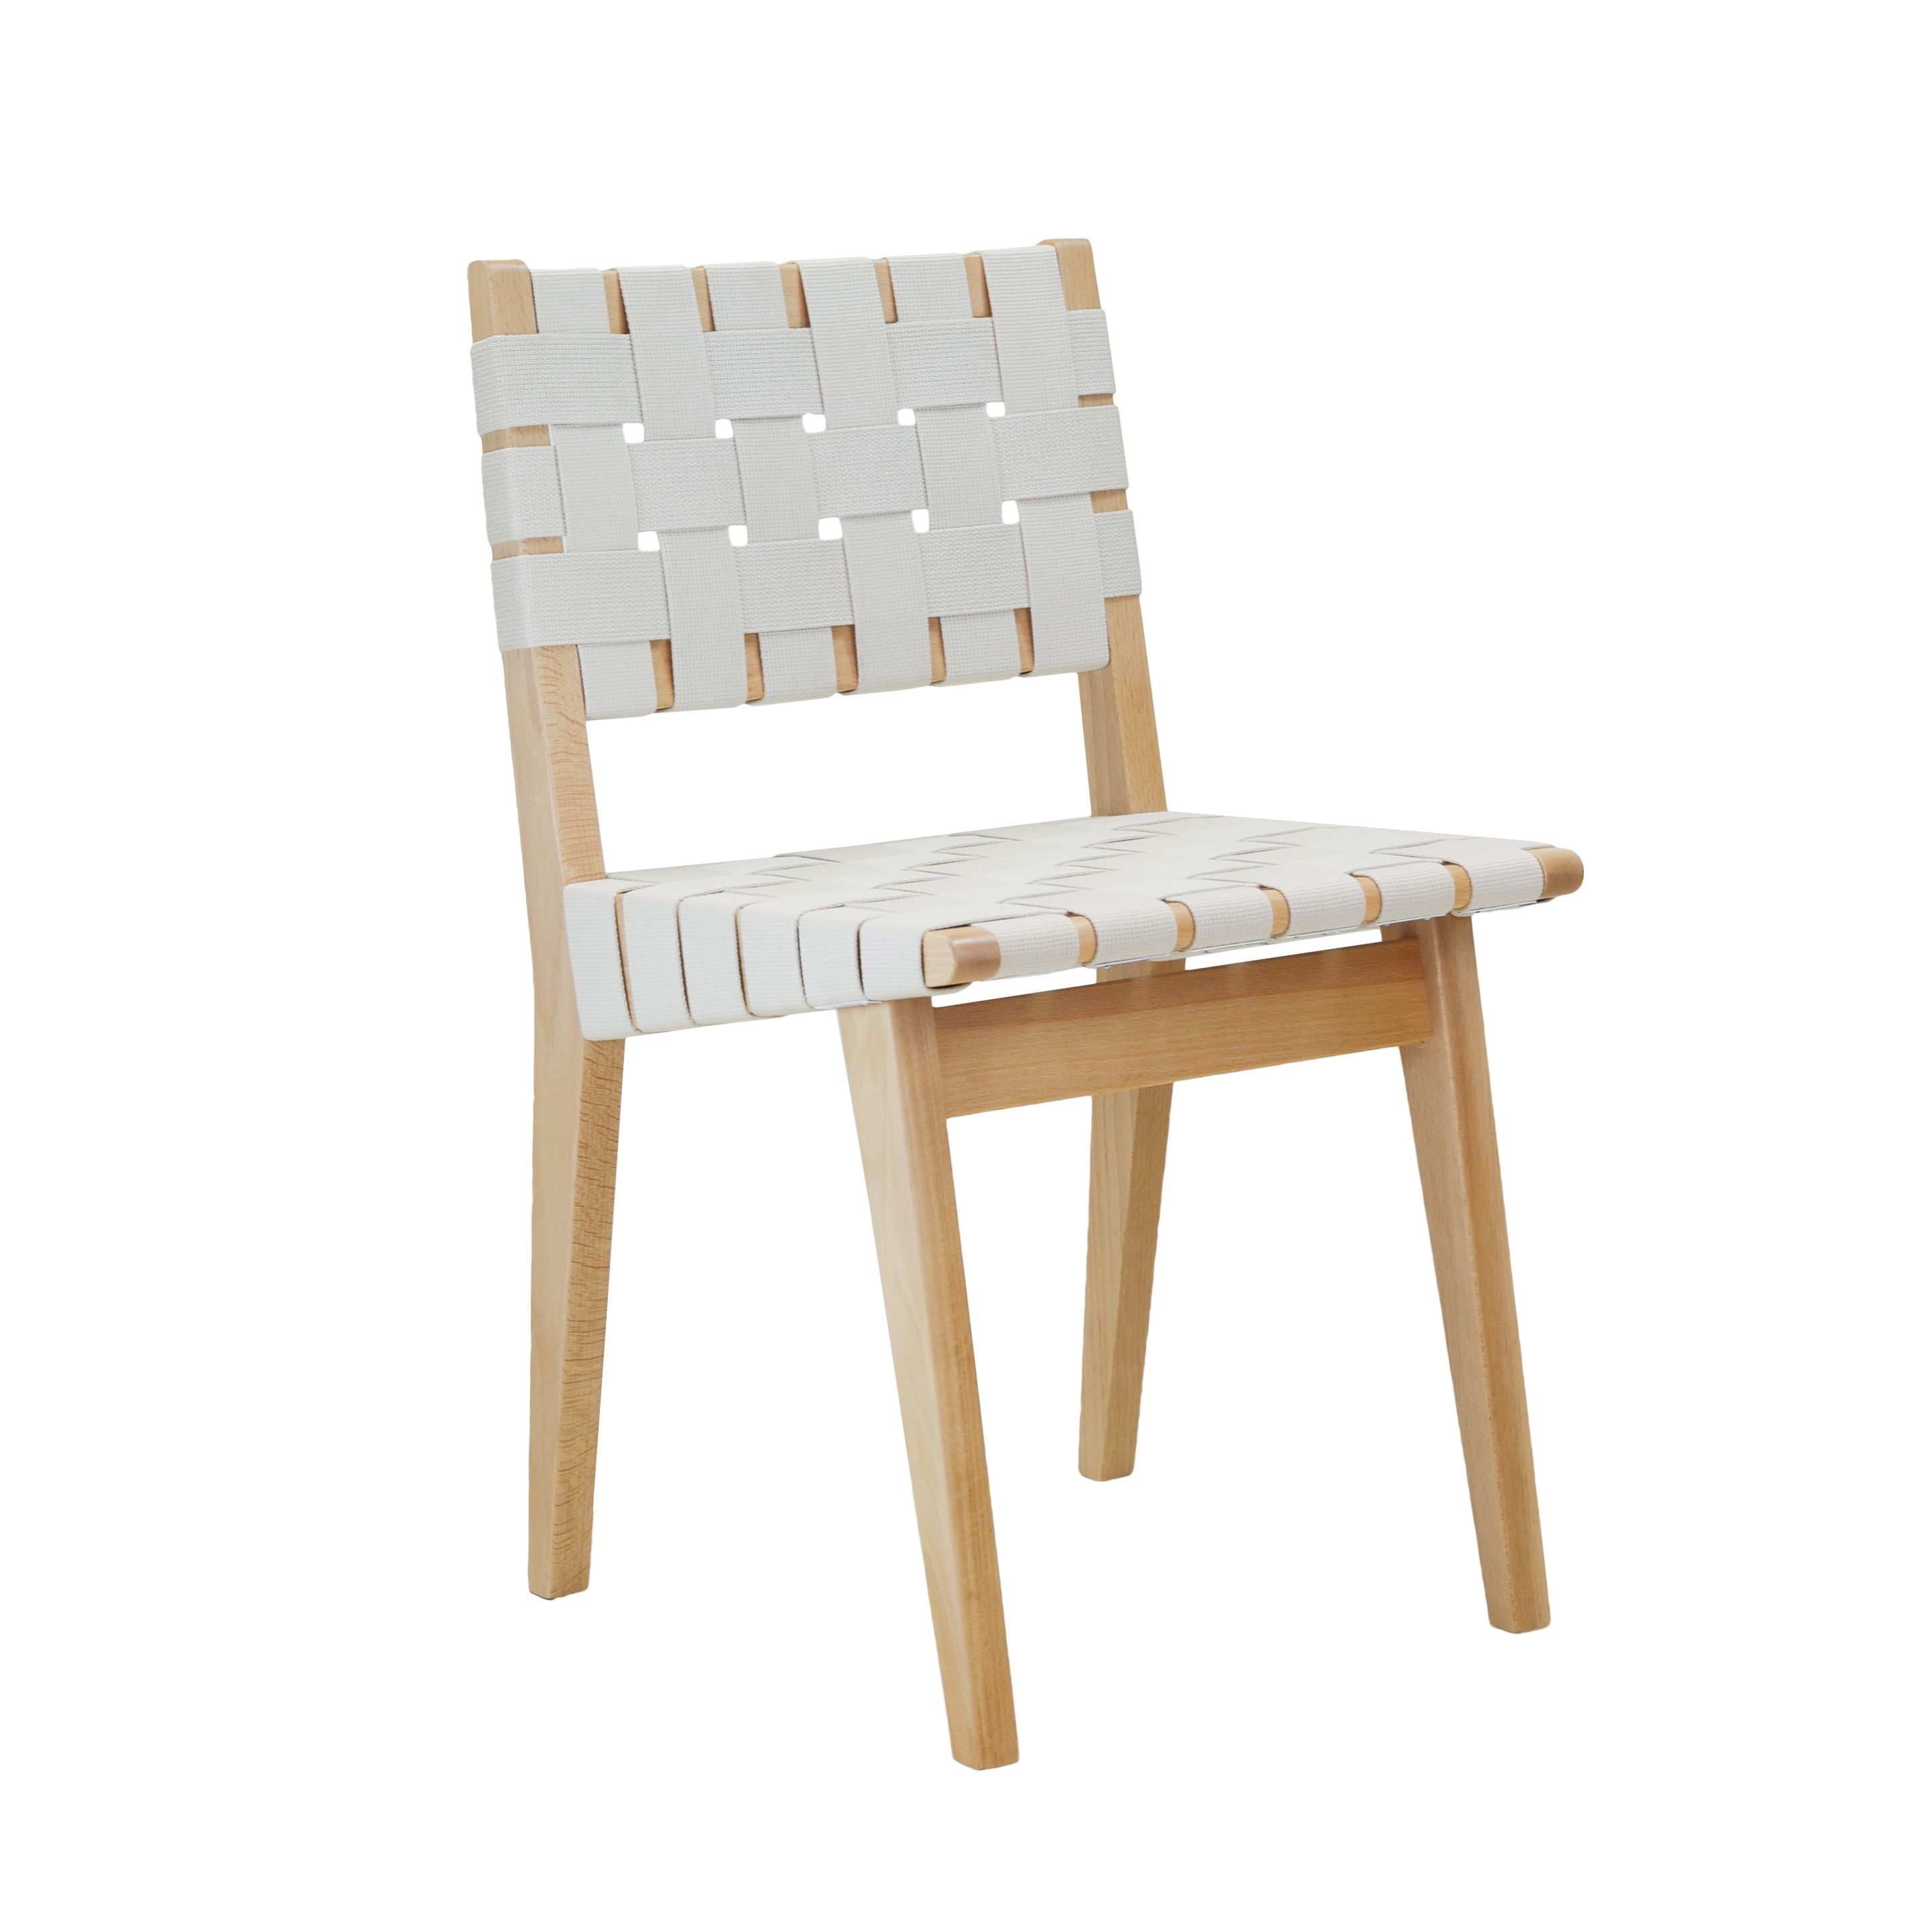 The Cotton Weave Dining Chair in White is pact and practical as